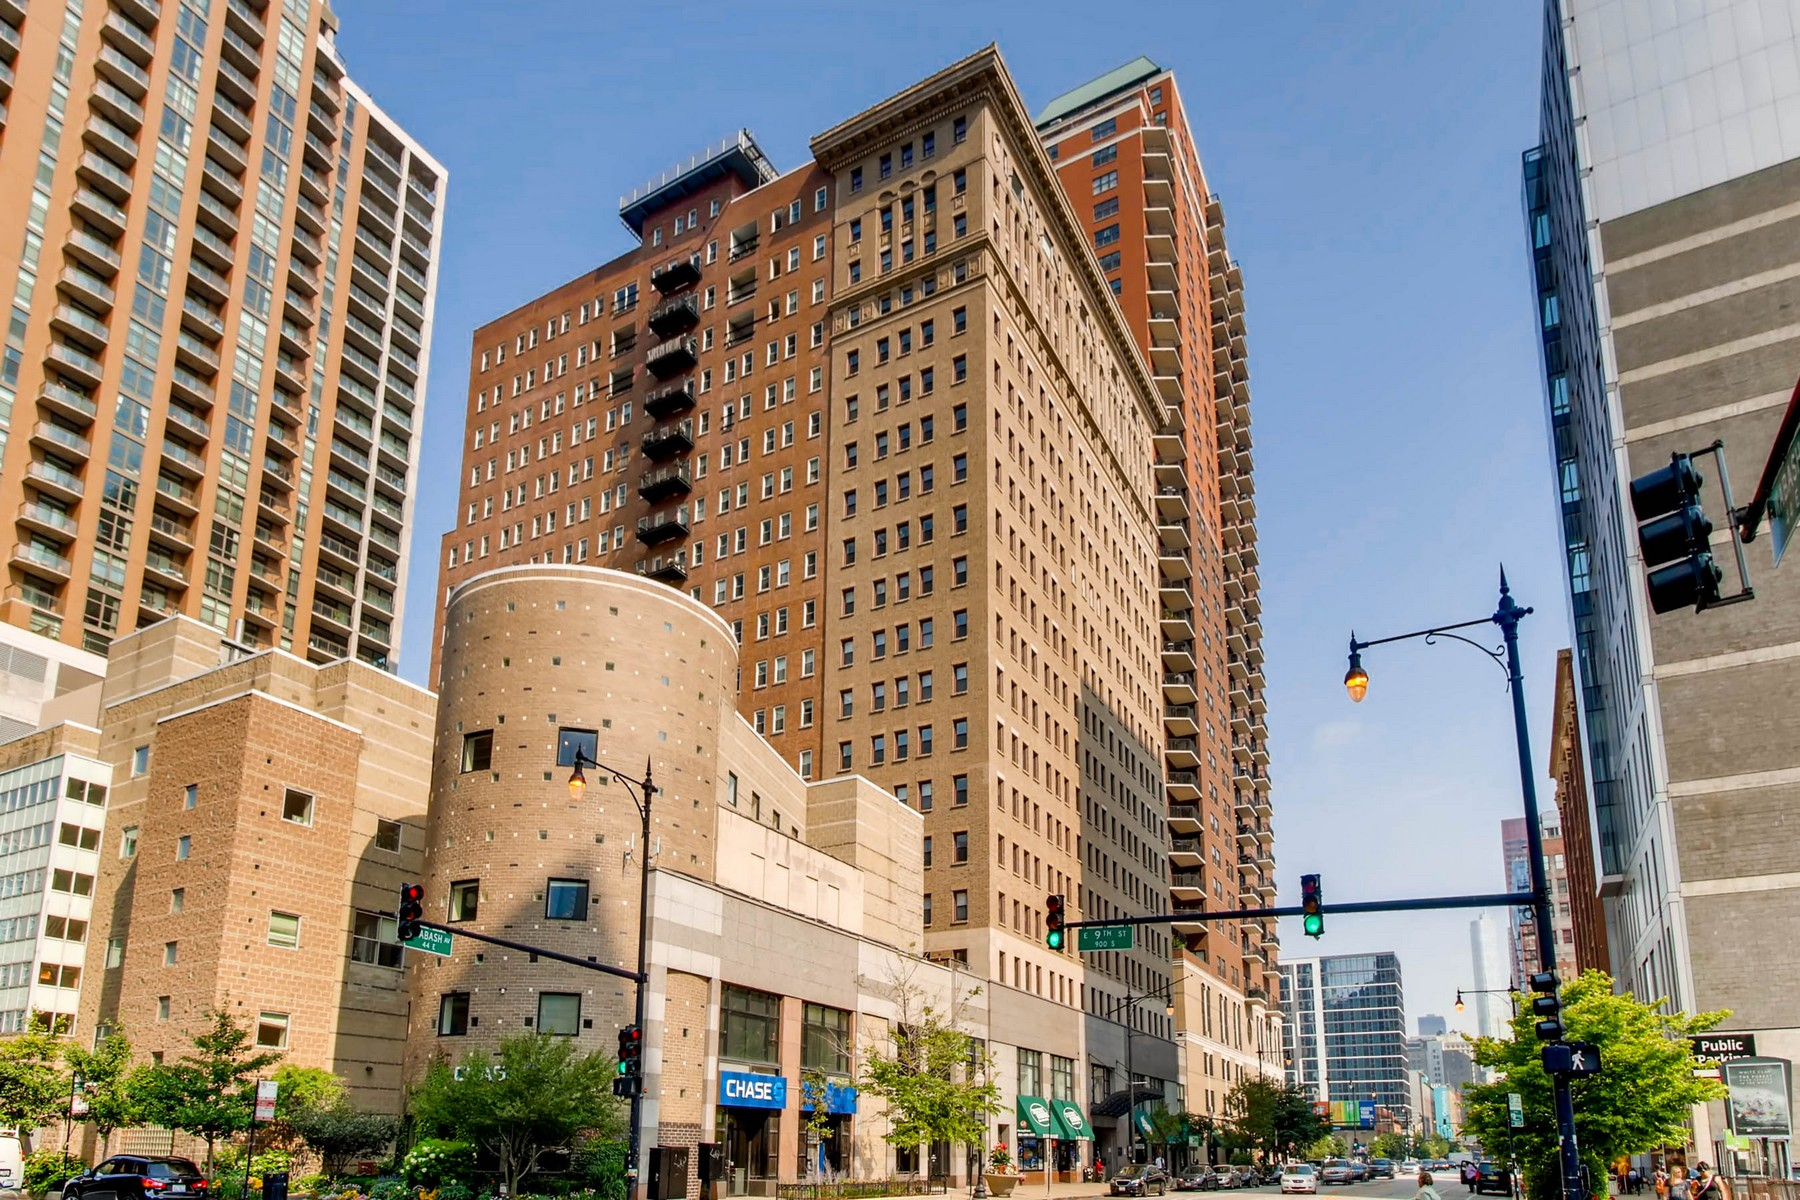 Condominium for Sale at Spacious One Bedroom in South Loop 40 E 9th Street Unit 415 Chicago, Illinois 60605 United States